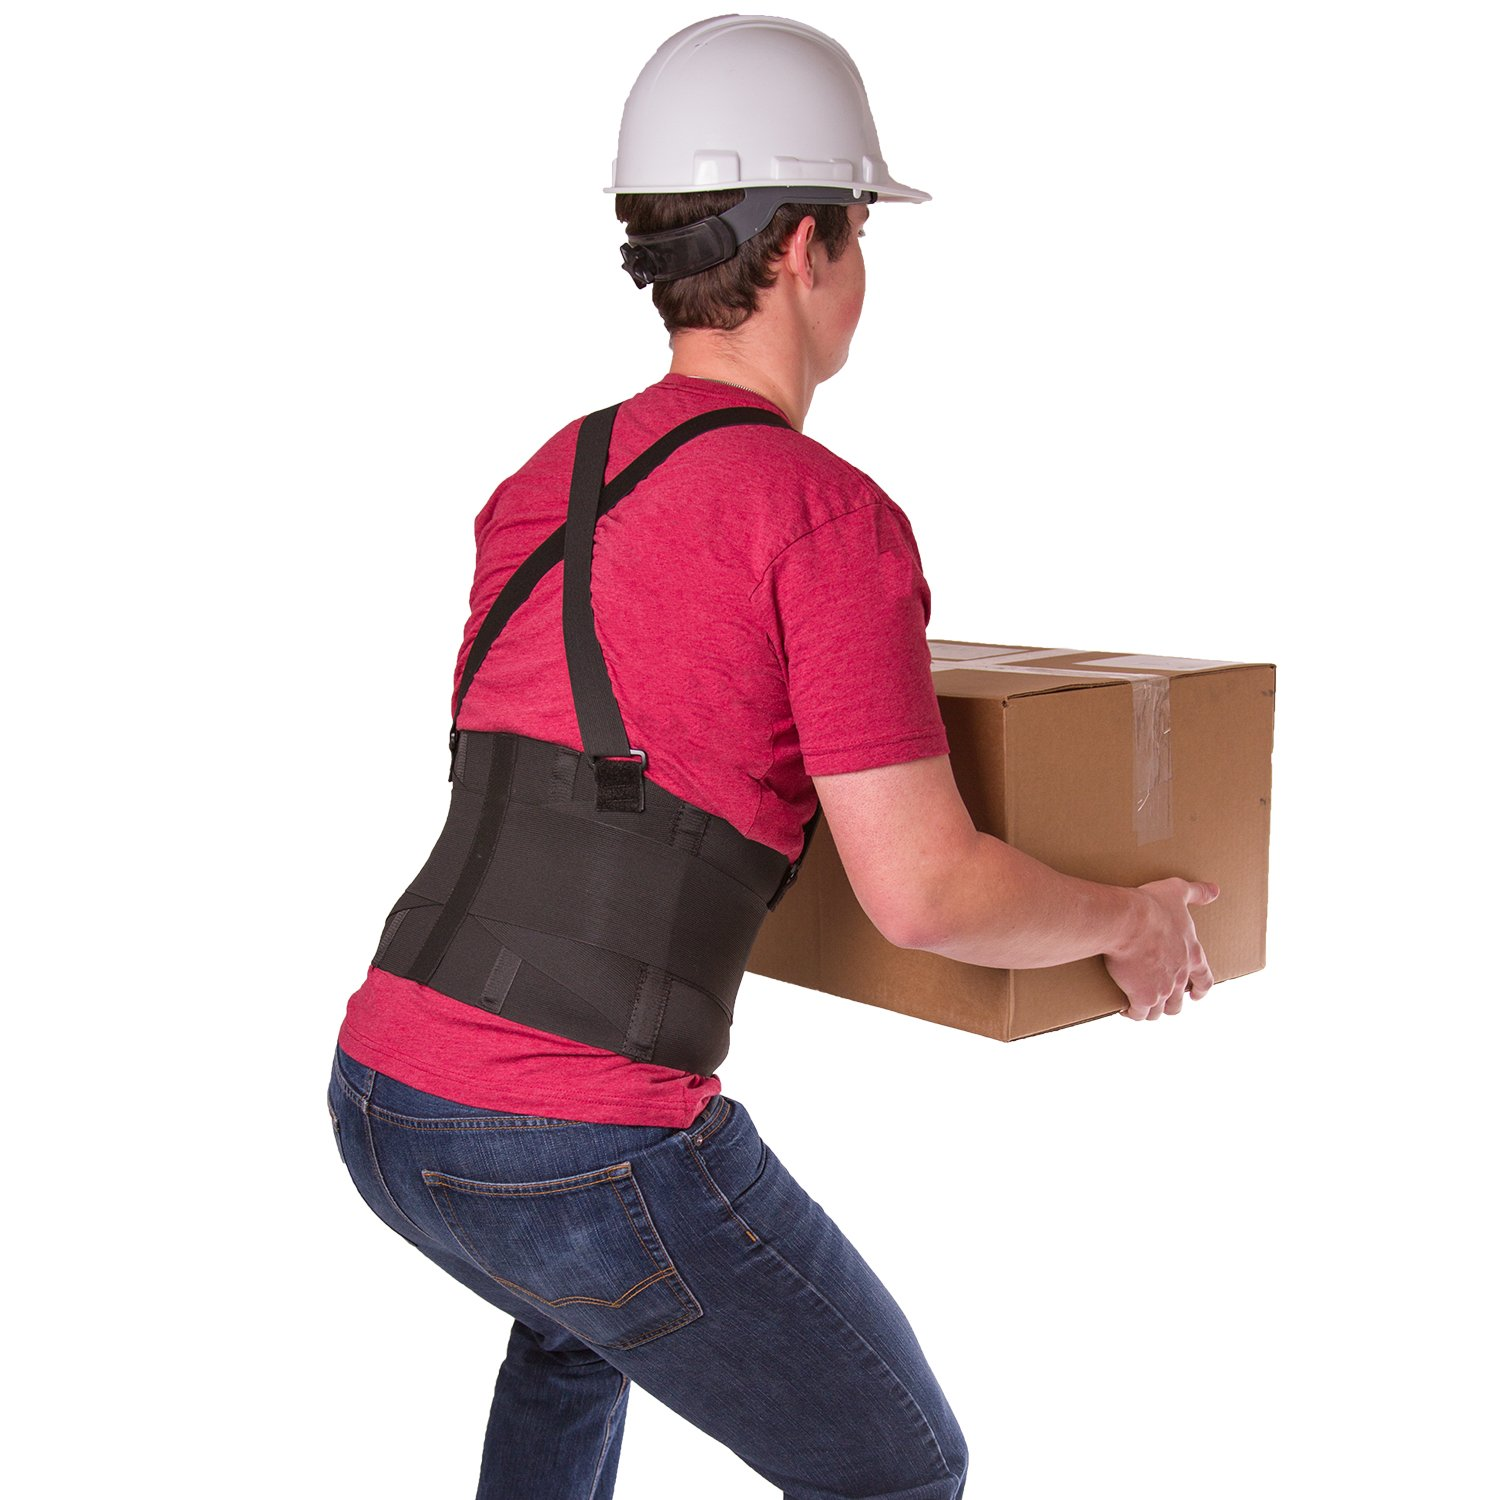 BraceAbility Industrial Work Back Brace | Removable Suspender Straps for Heavy Lifting Safety - Lower Back Pain Protection Belt for Men & Women in Construction, Moving and Warehouse Jobs (Large) by BraceAbility